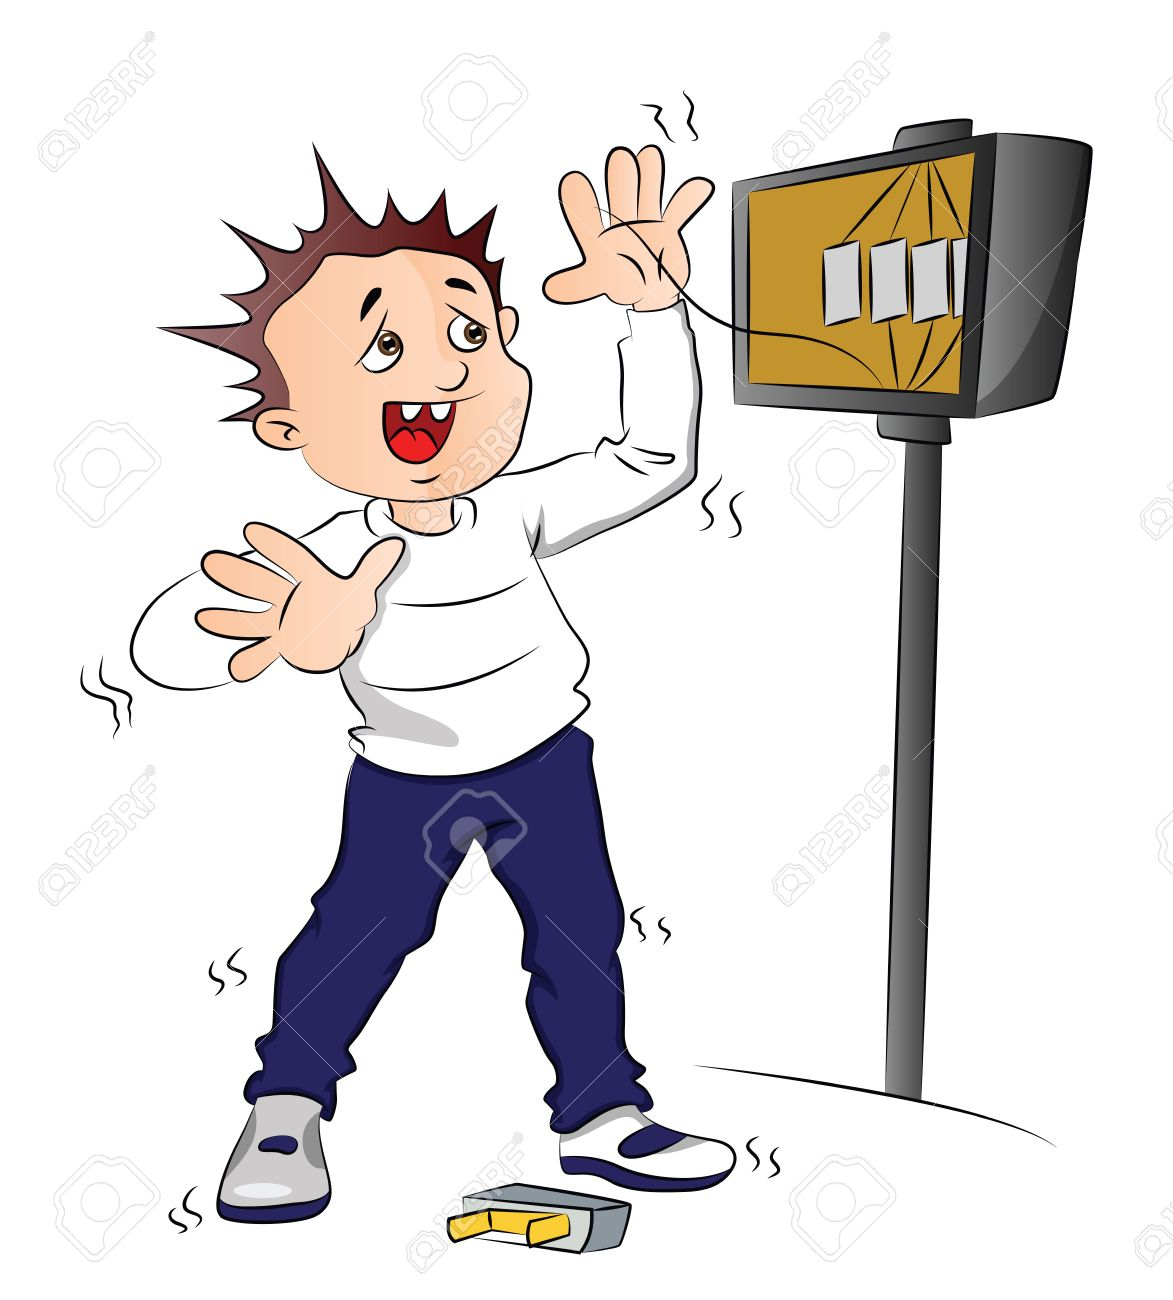 37764215 Vector illustration of man receiving an electric shock after short circuit in fuse box Stock Vector vector illustration of man receiving an electric shock after Cartoon Spine Nerves at bayanpartner.co